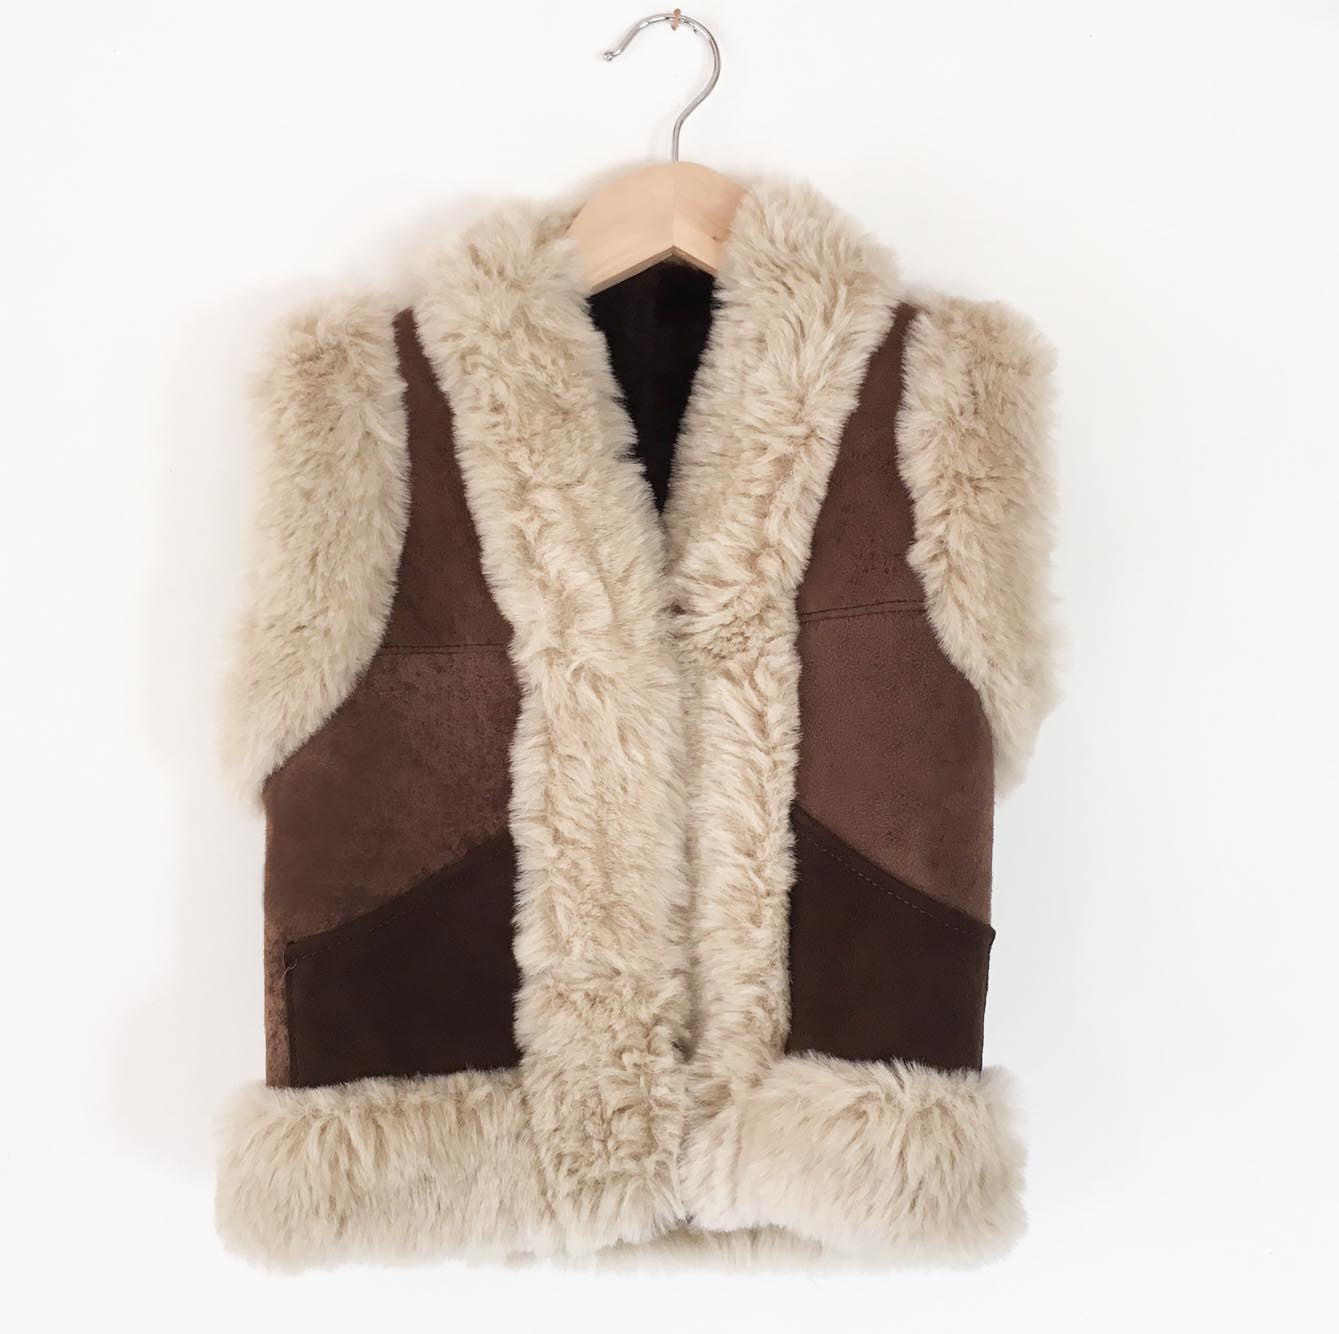 Suede and faux shearling vest size 6-8